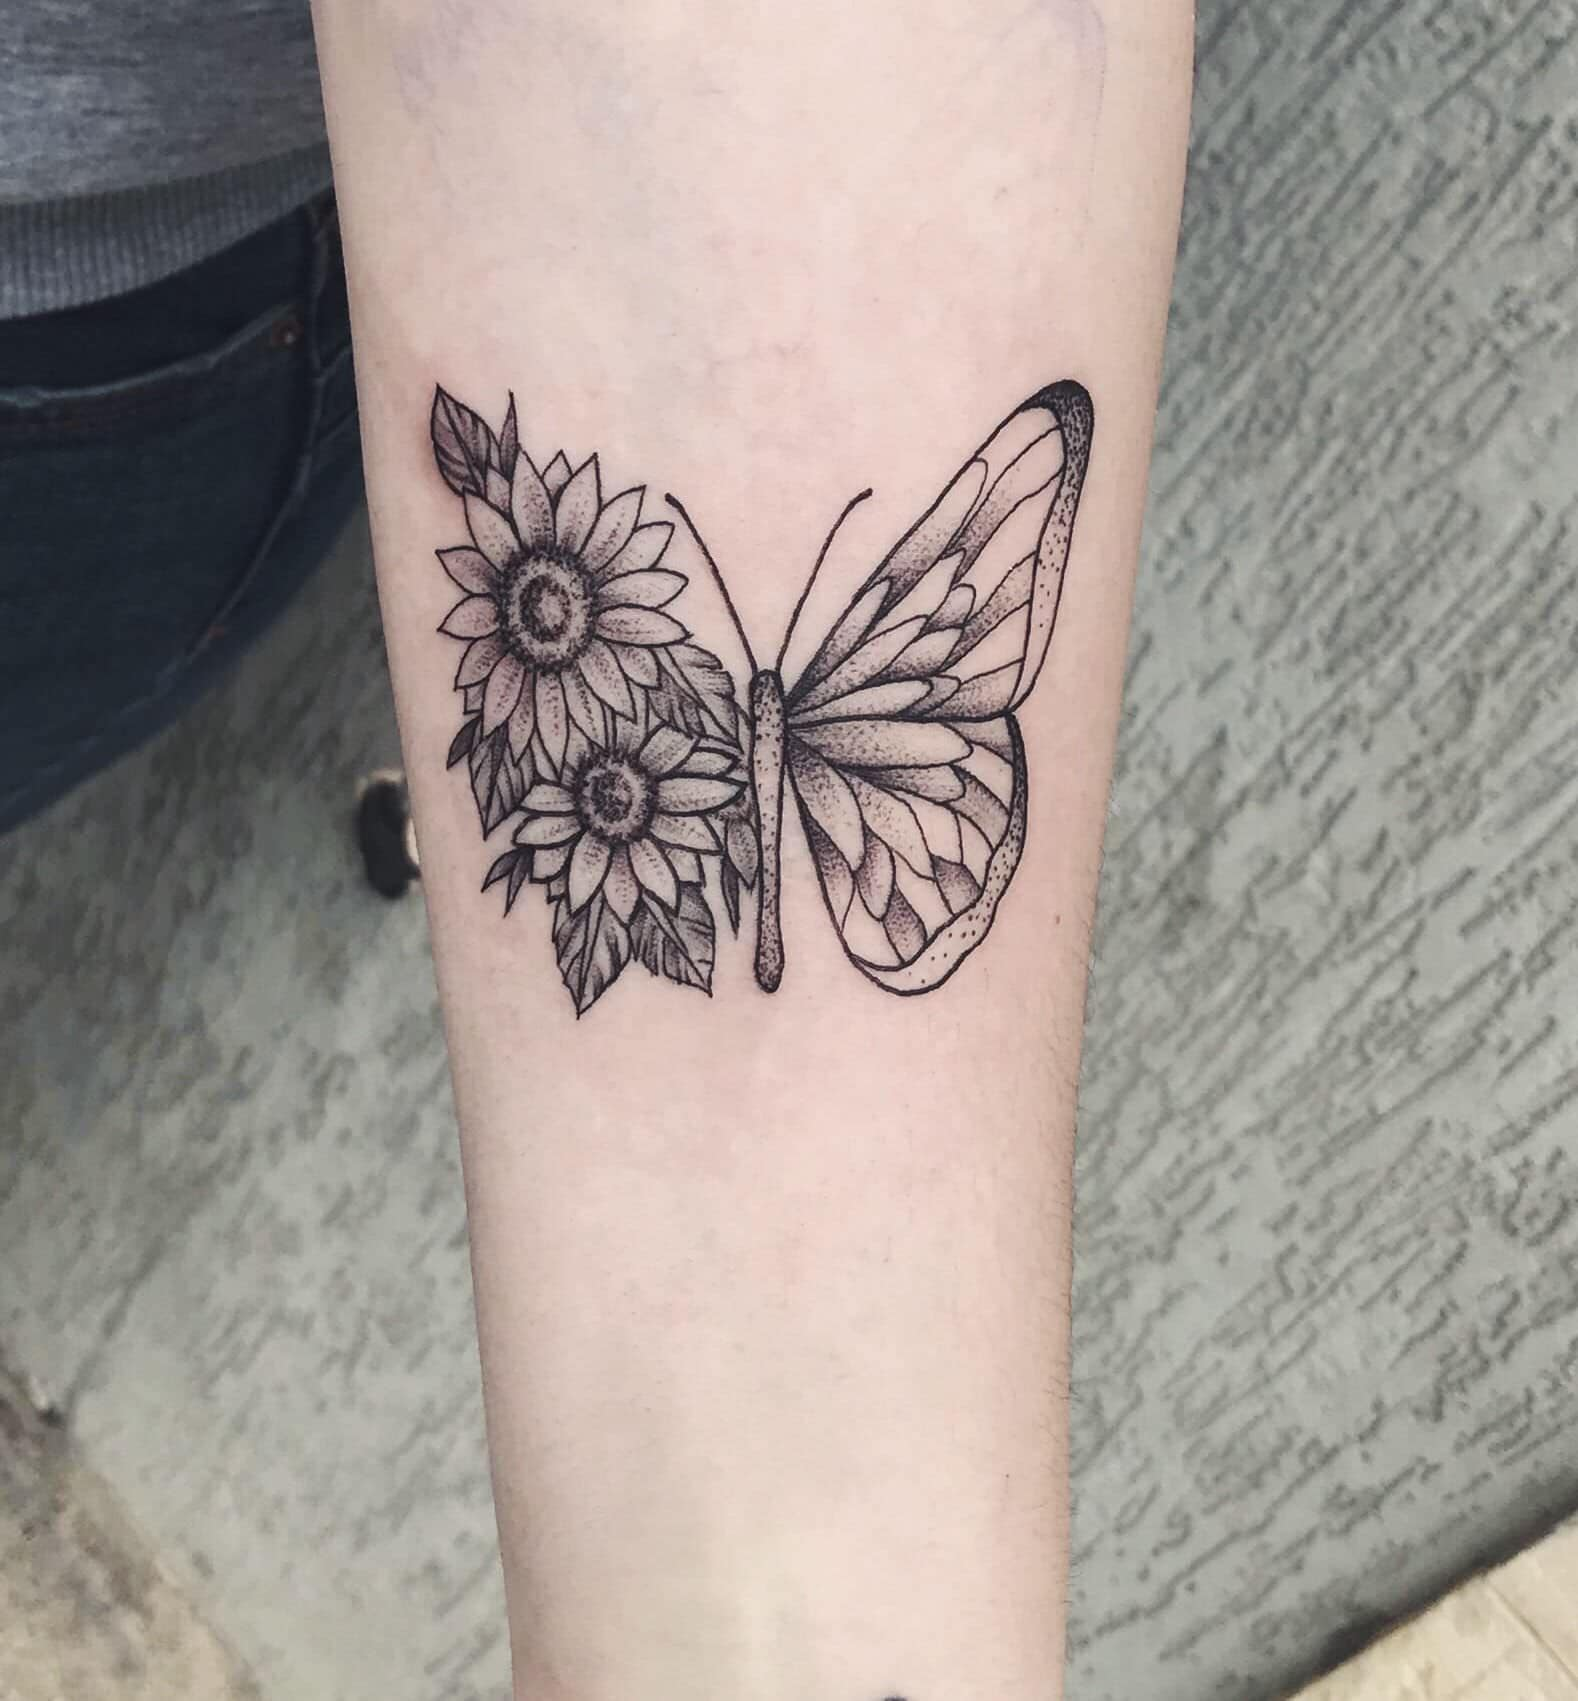 Half Butterfly Half Sunflower tattoo